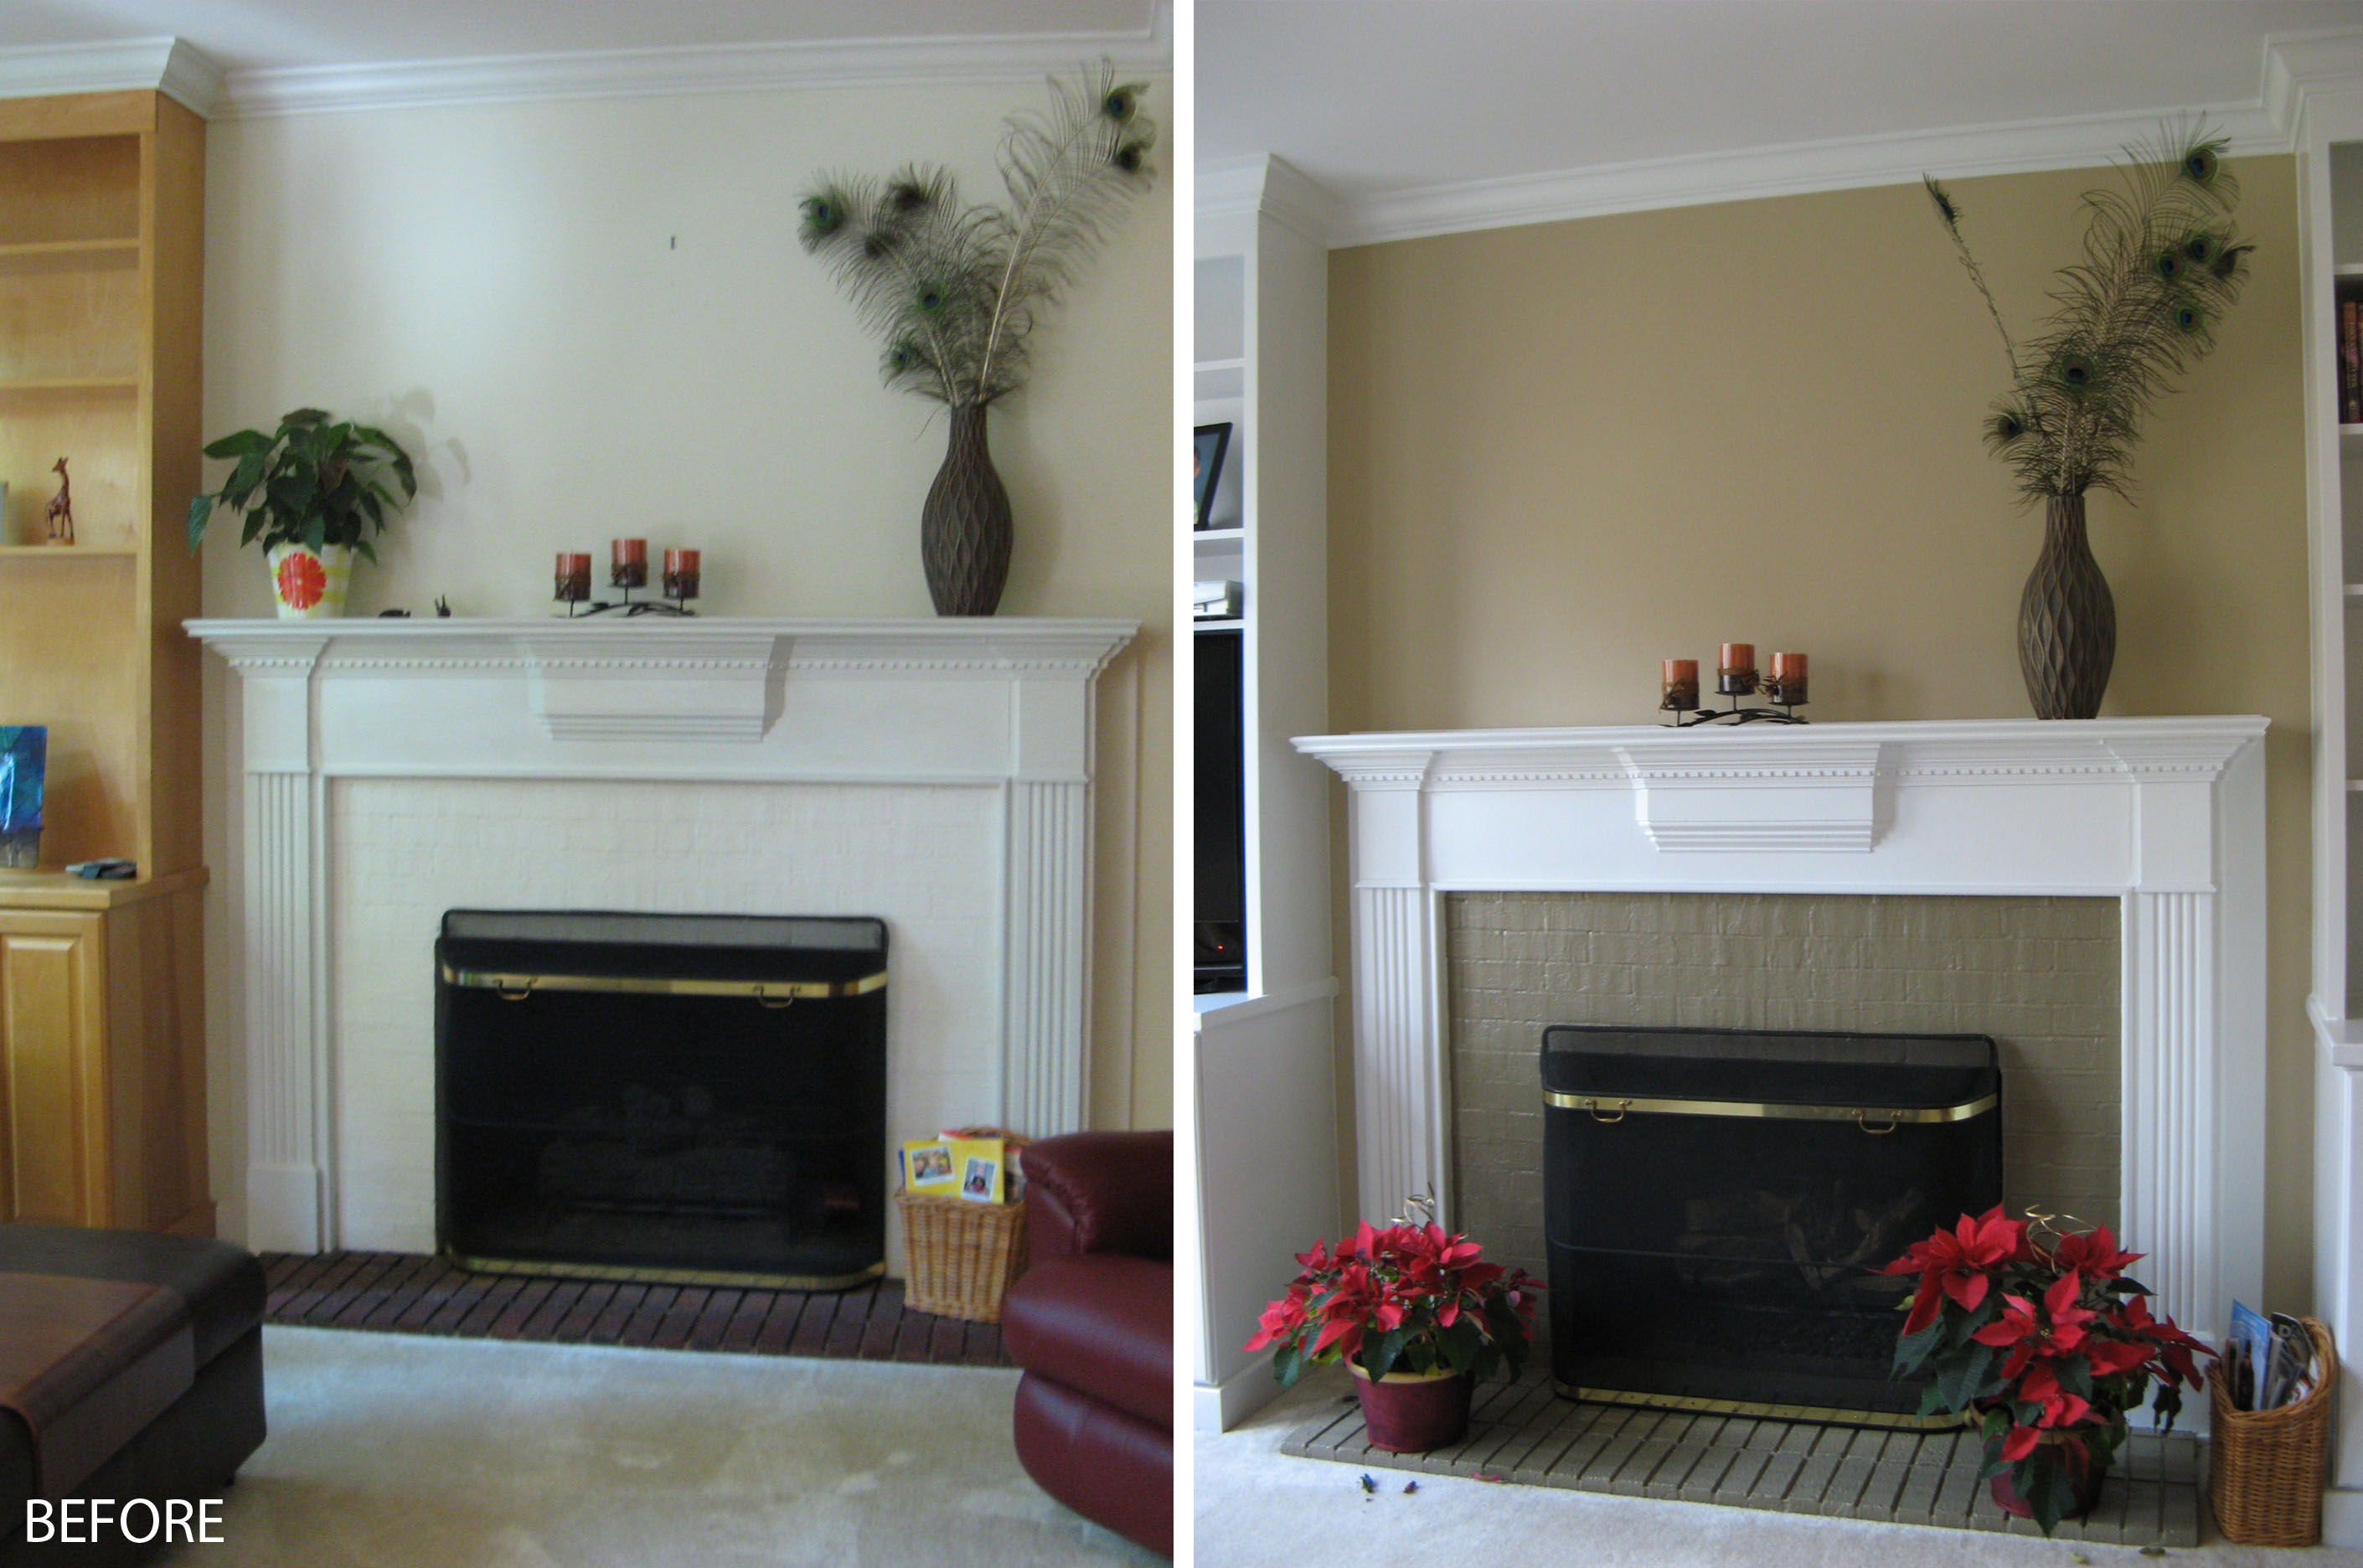 Painted brick fireplace images fireplace design ideas for Fireplace paint color ideas